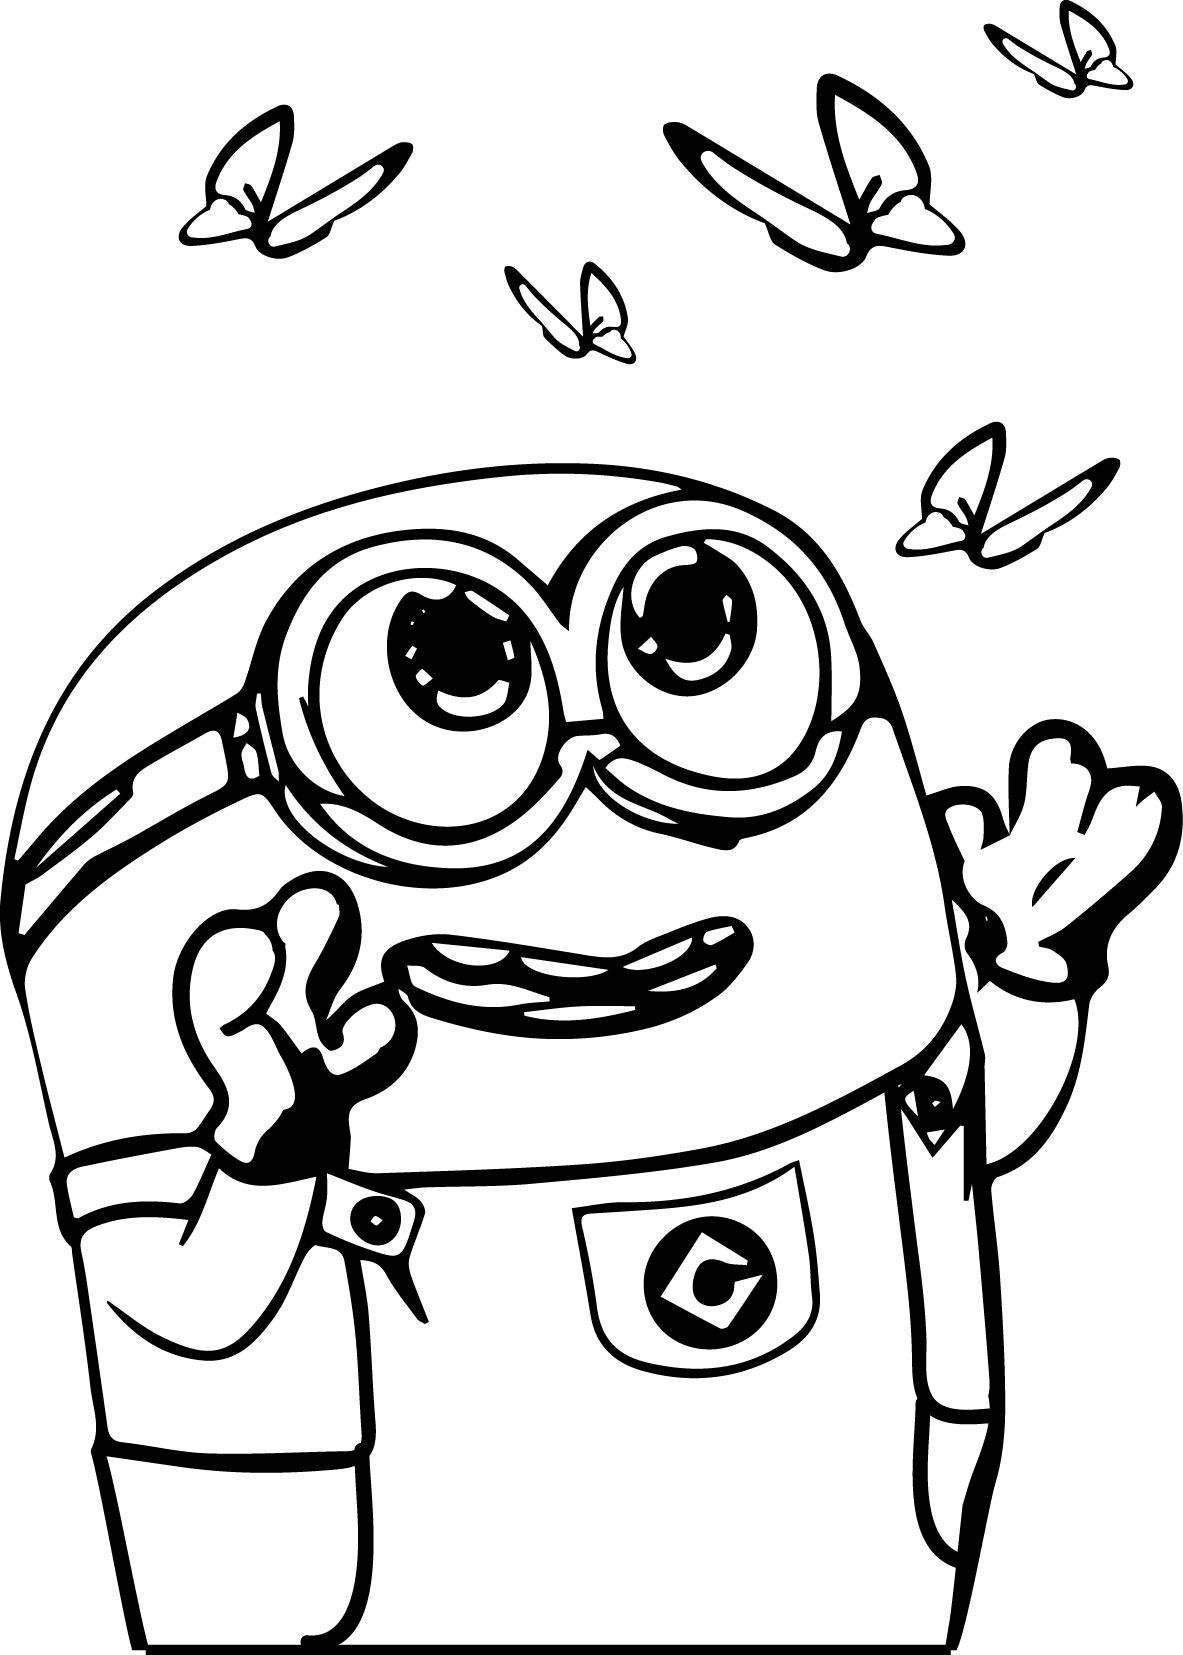 Minion catch butterfly coloring page riscos bebe for Coloring pages to print minions